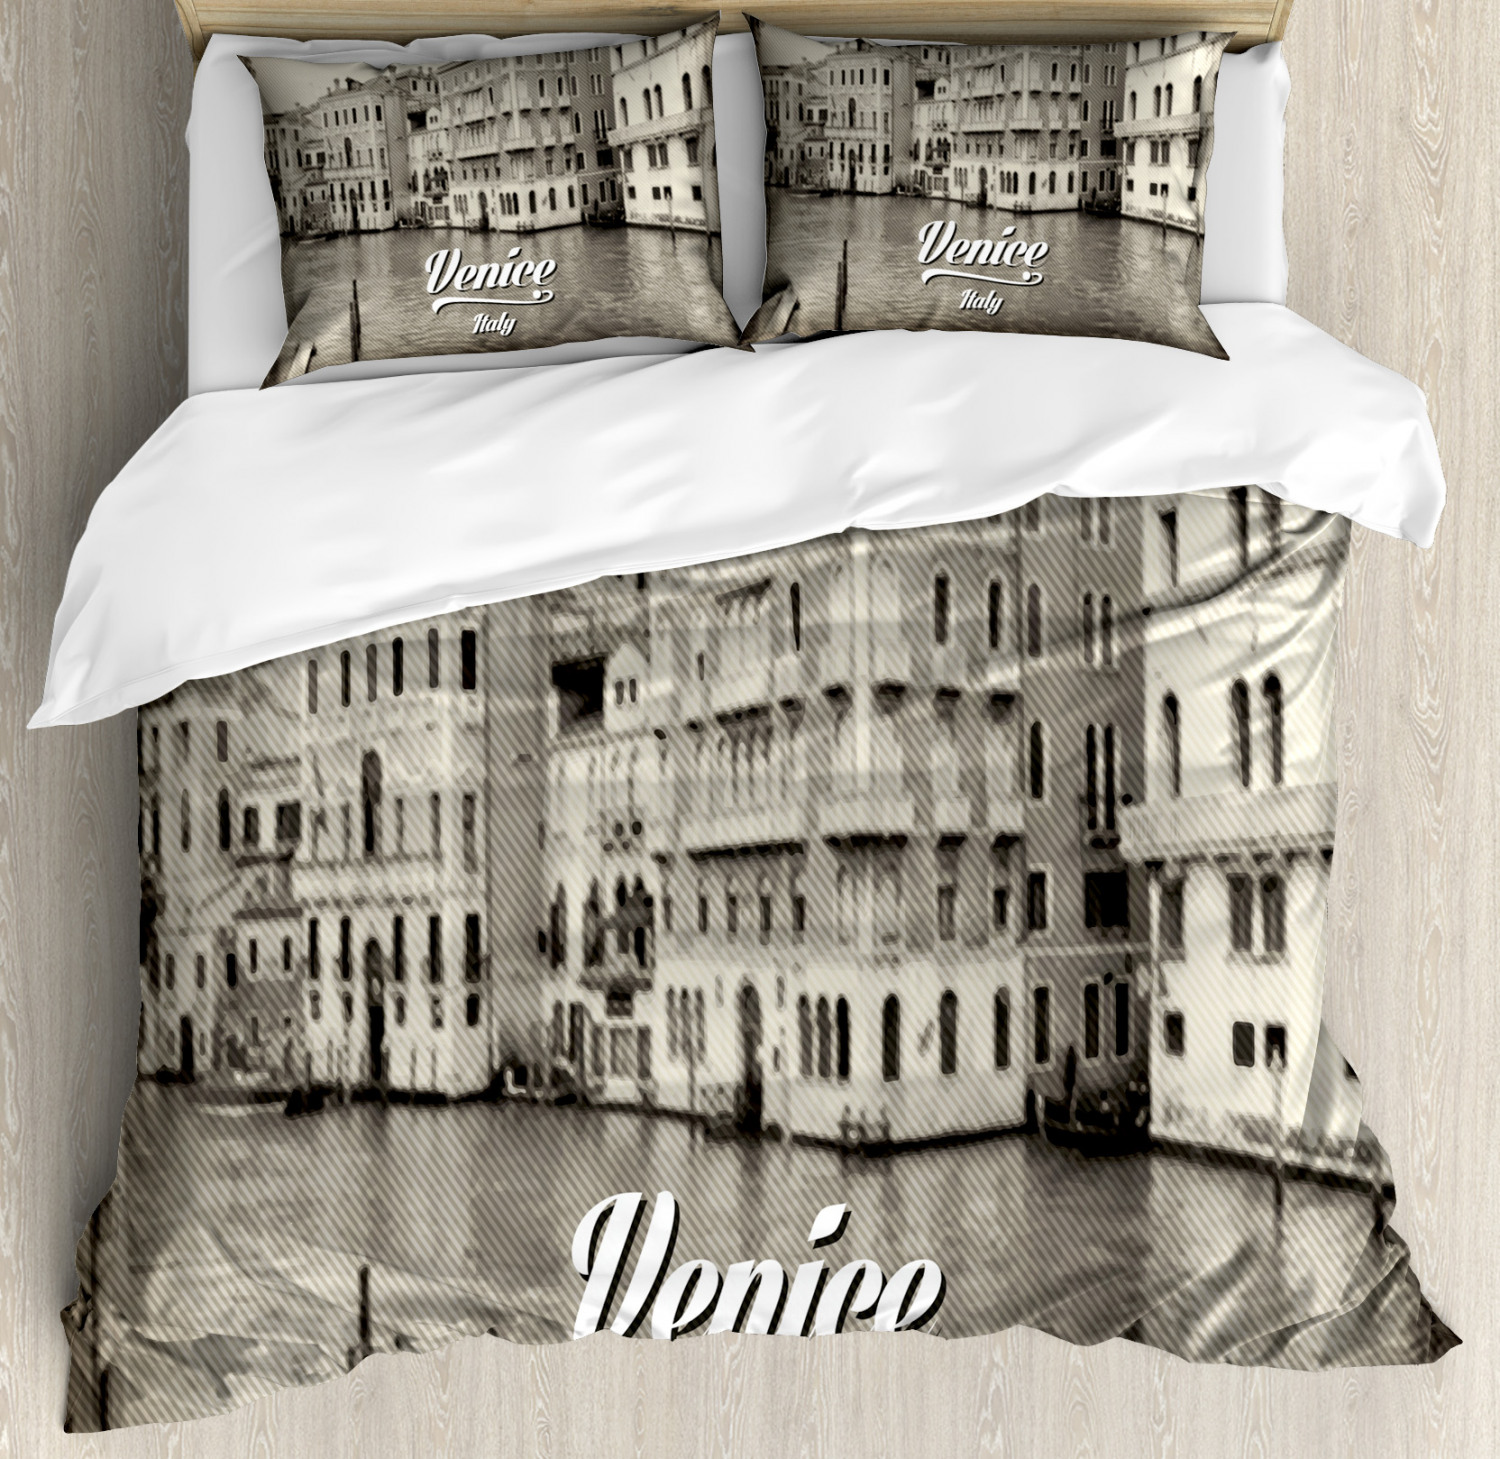 Venice Duvet Cover Set with Pillow Shams Old Venice Vintage Photo Print